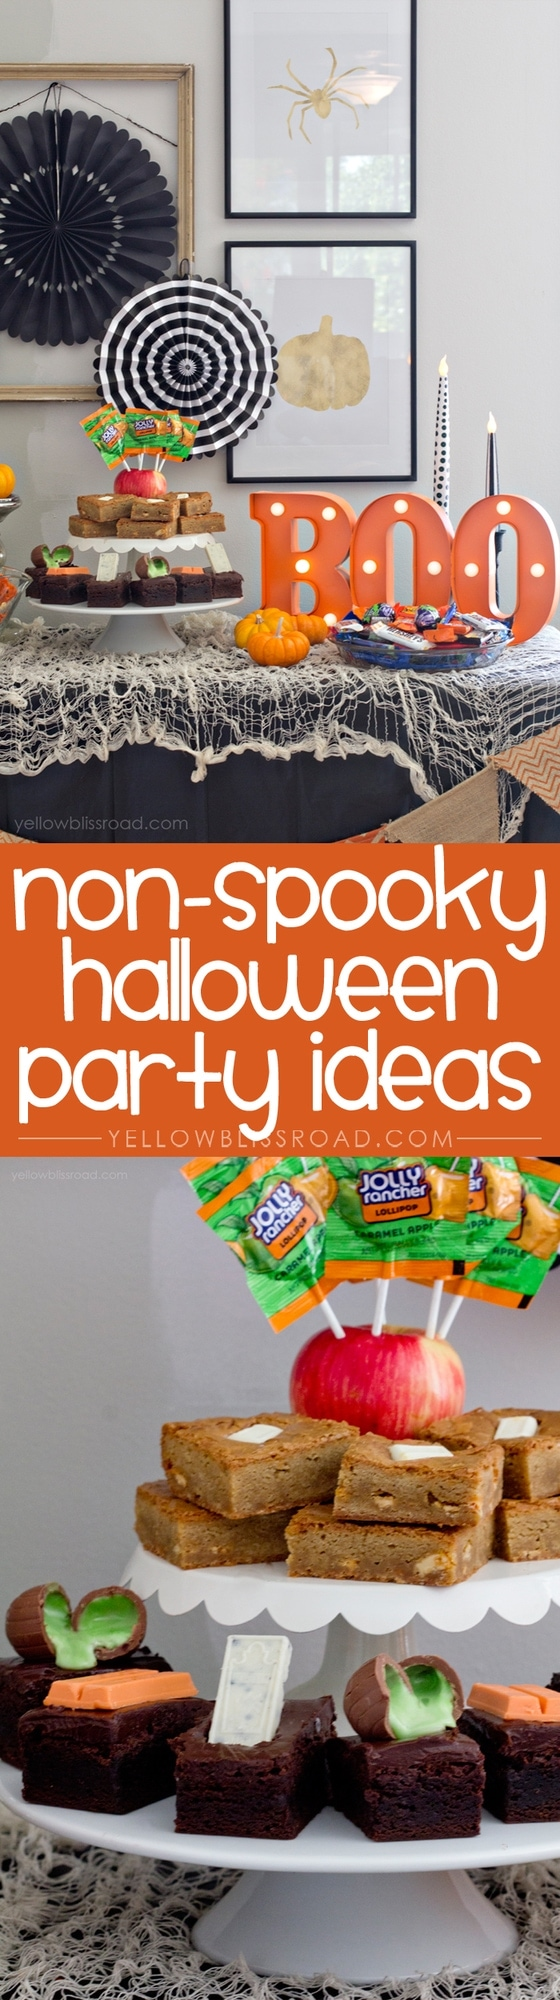 Non-Spooky Hallloween Party Ideas